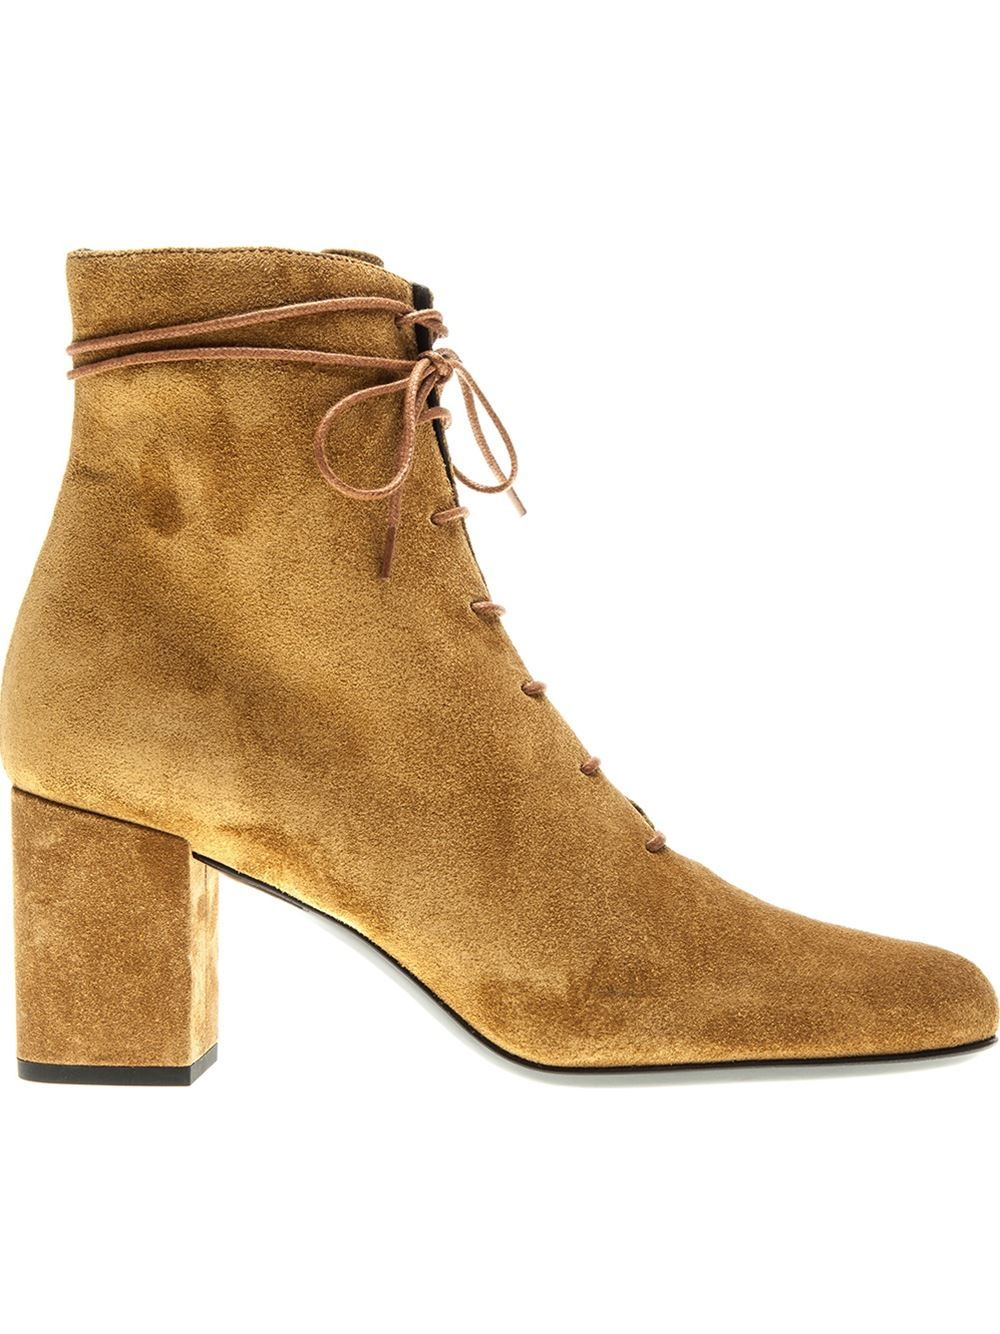 bb16c6d2c3261 Yves Saint Laurent Suede Lace-Up Ankle-Boots clearance choice cheap sale  shopping online